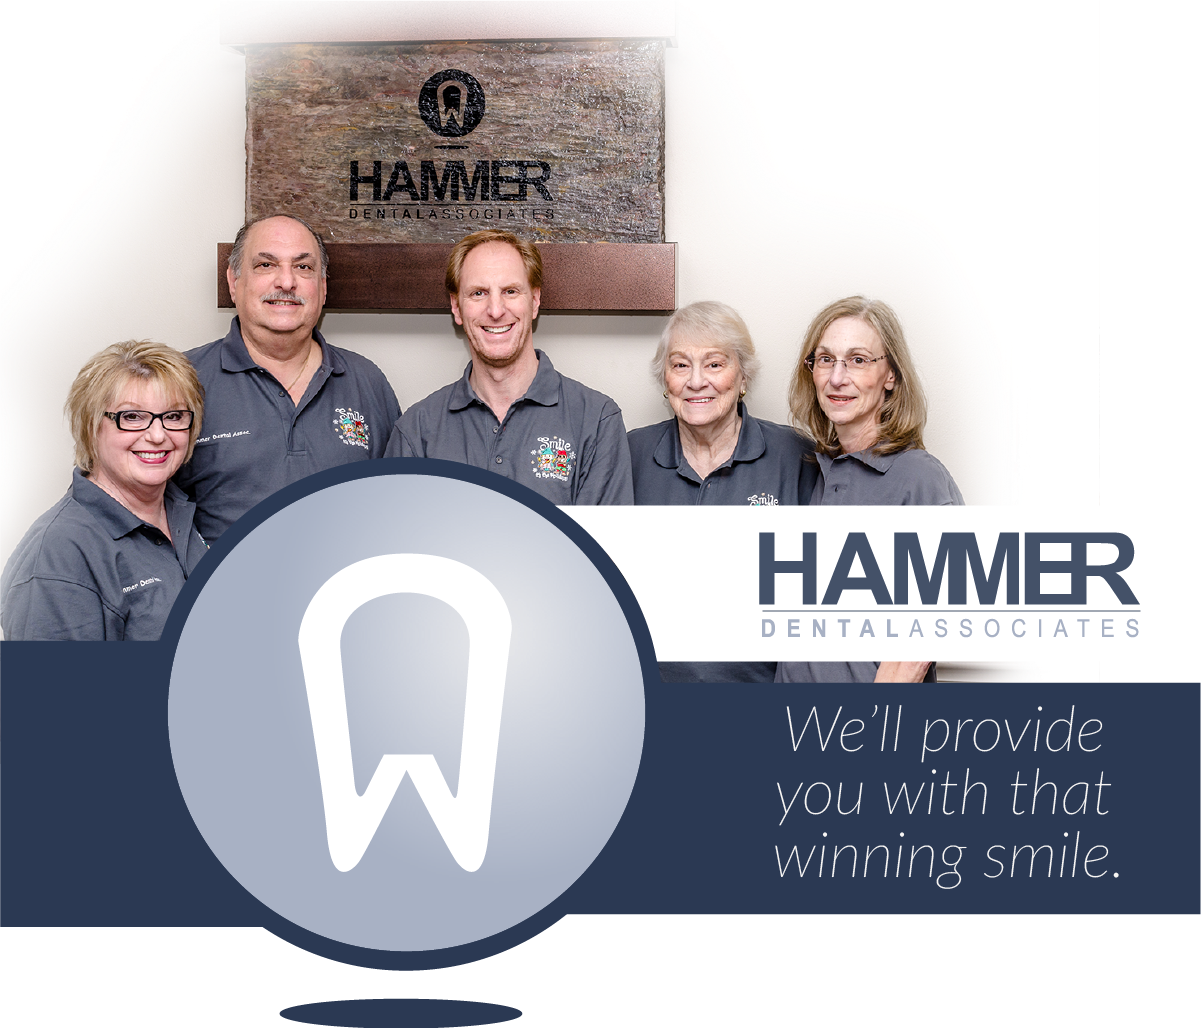 Hammer Dental Associates staff group photo